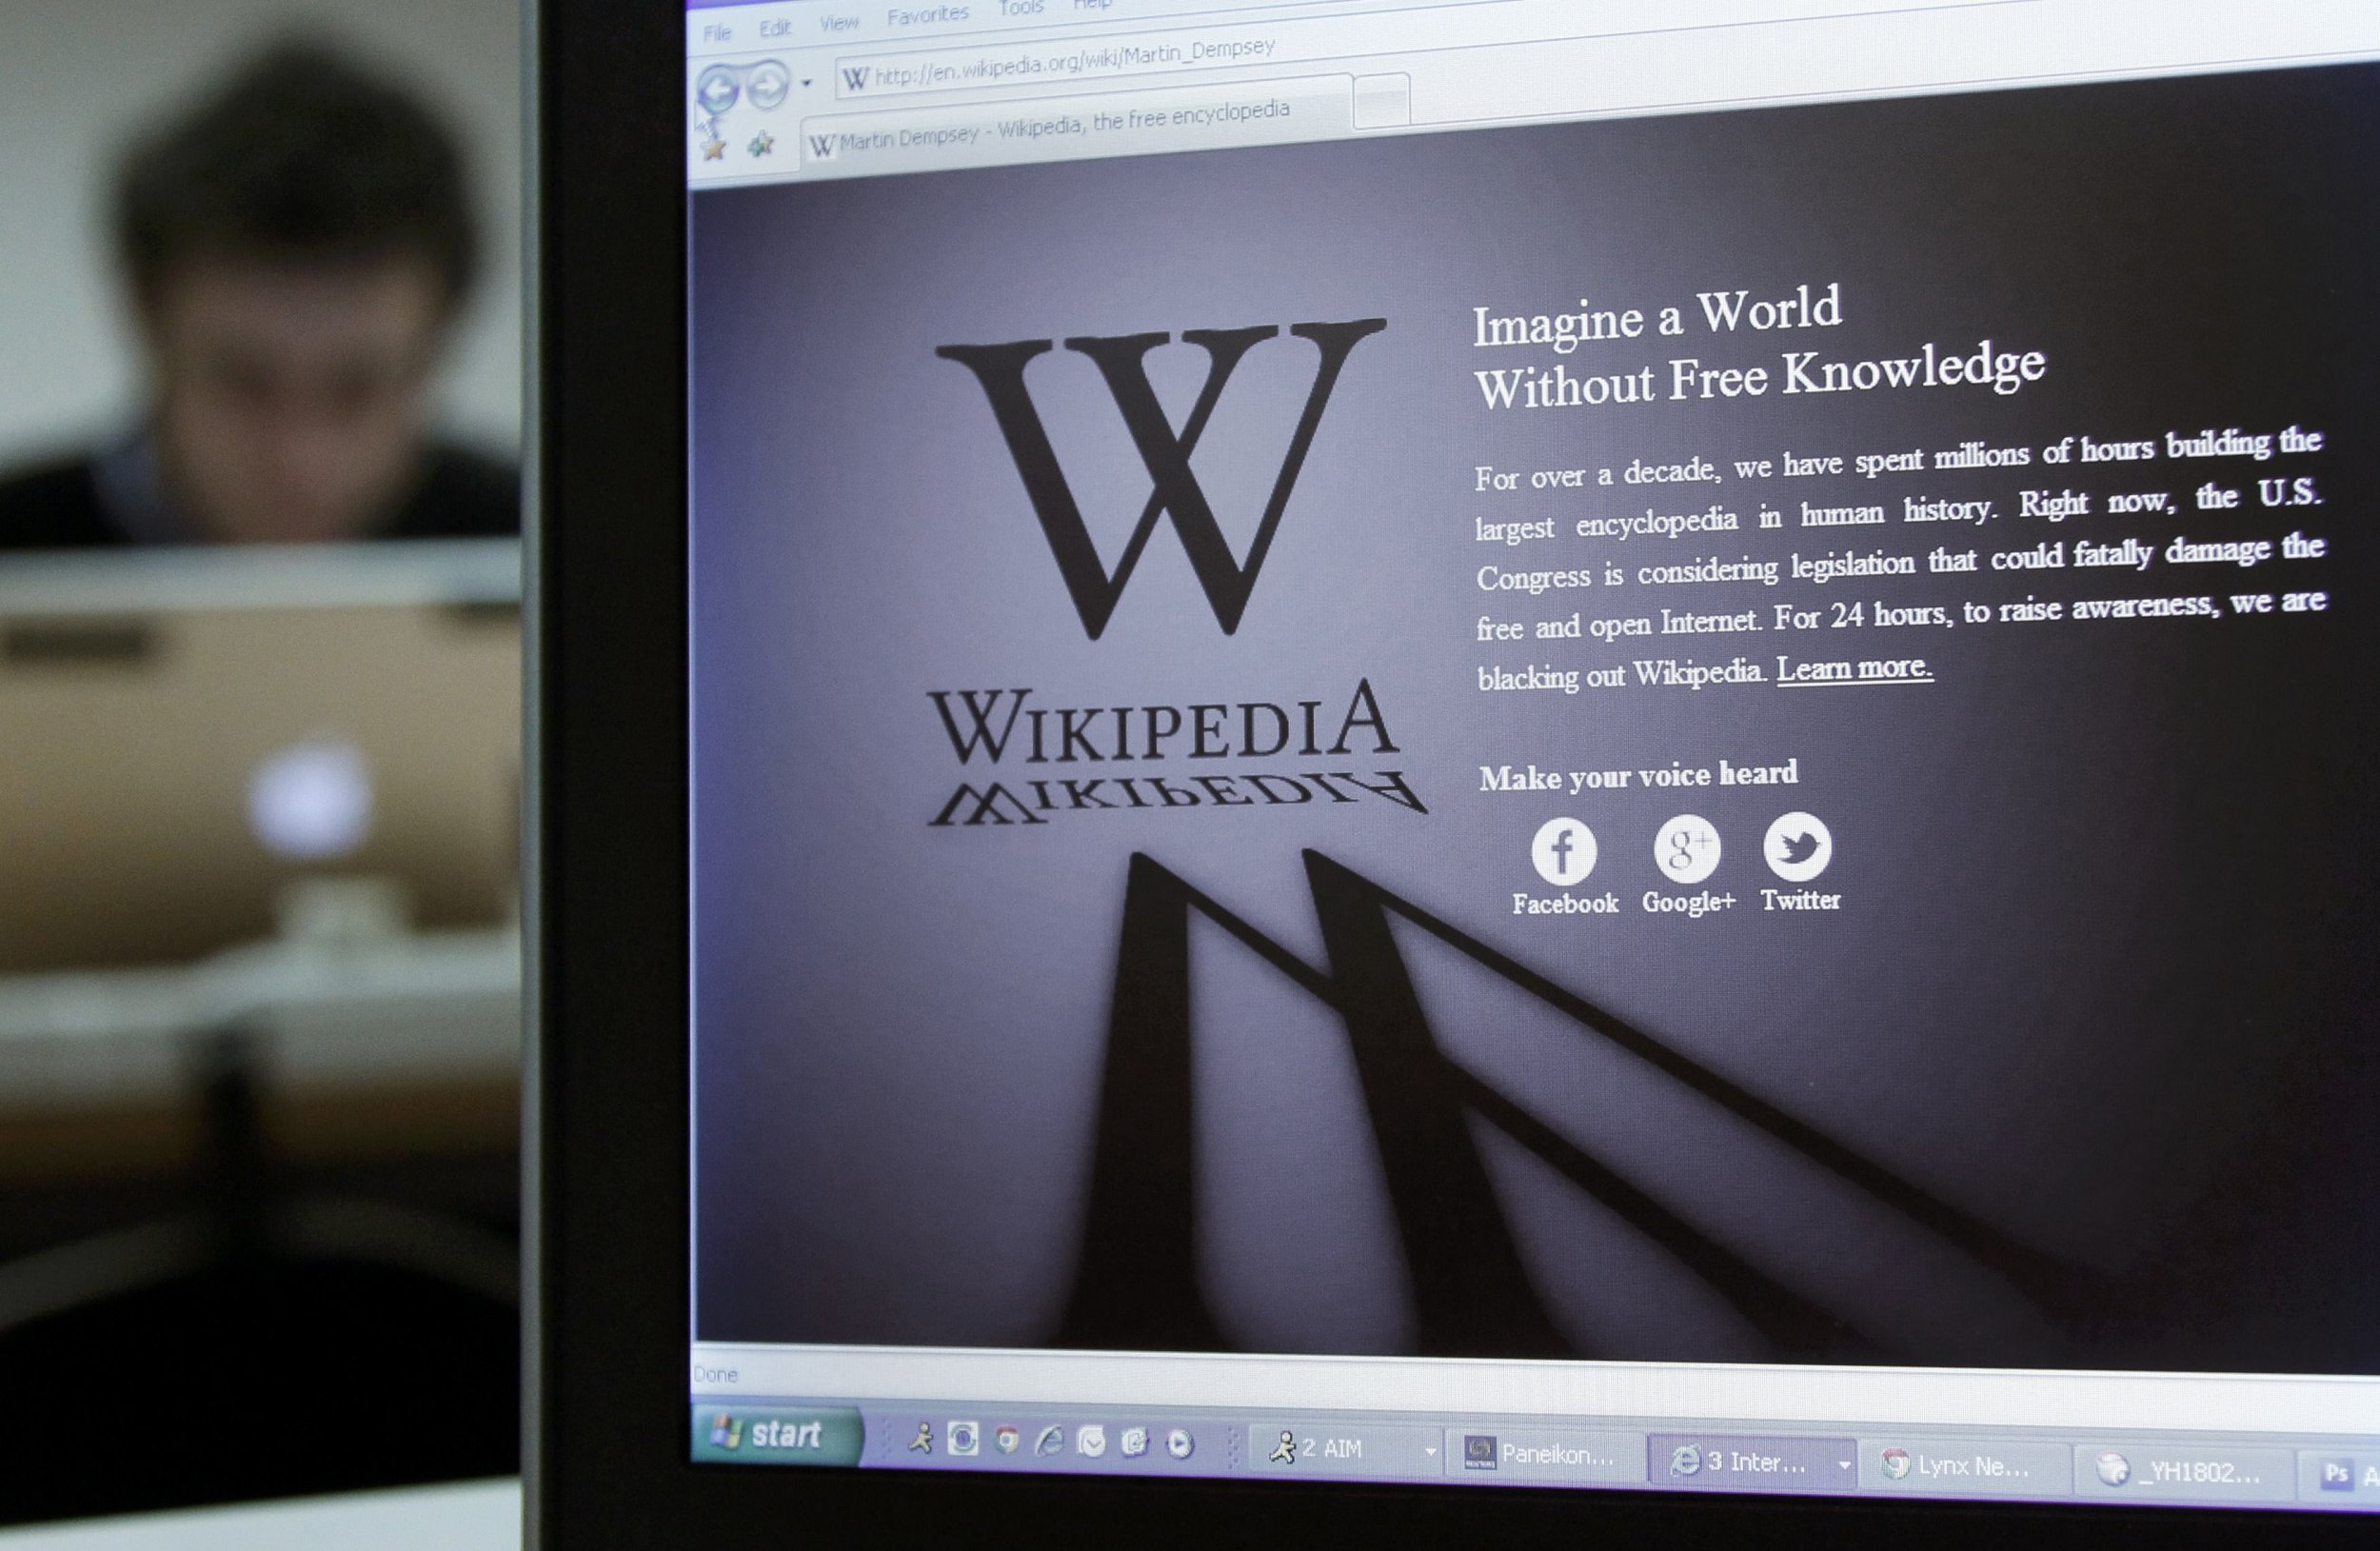 Wikipedia has announced plans for an ad free internet search engine